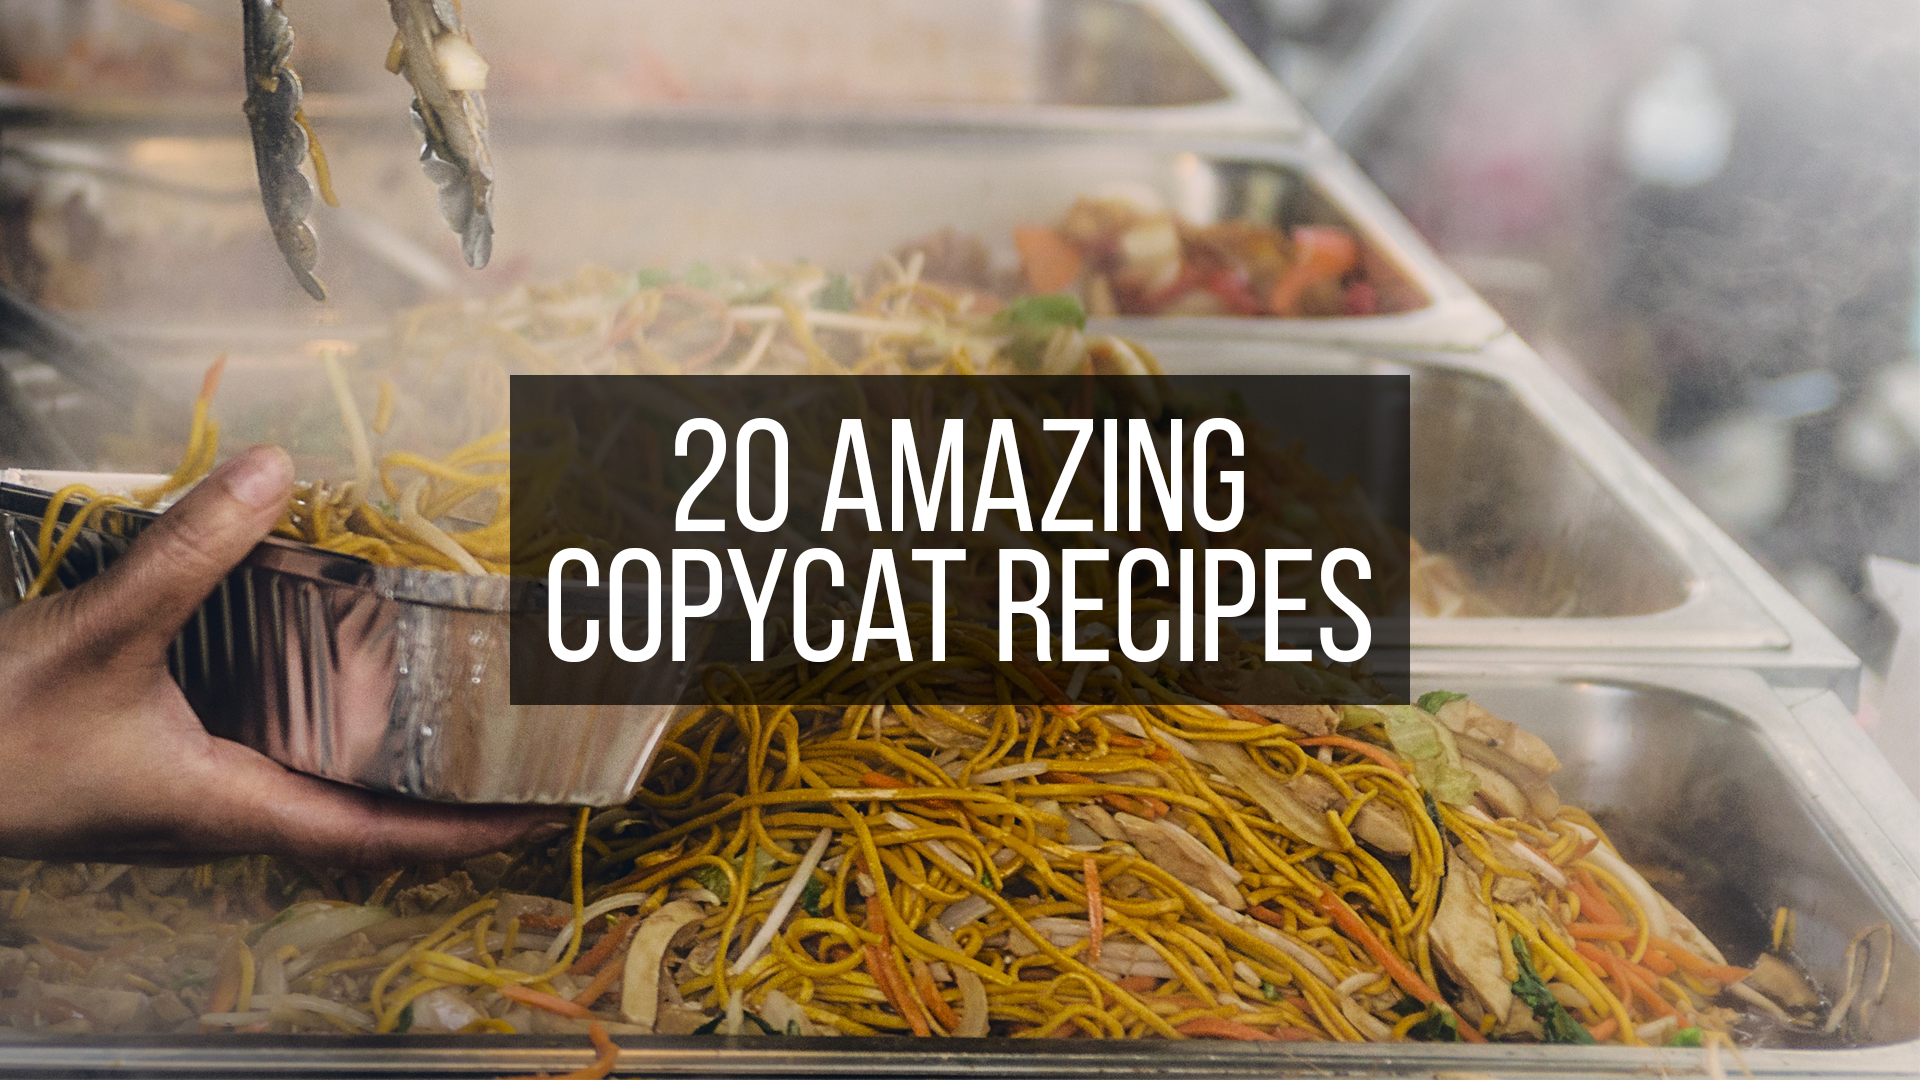 Copycat Recipes Featured Image